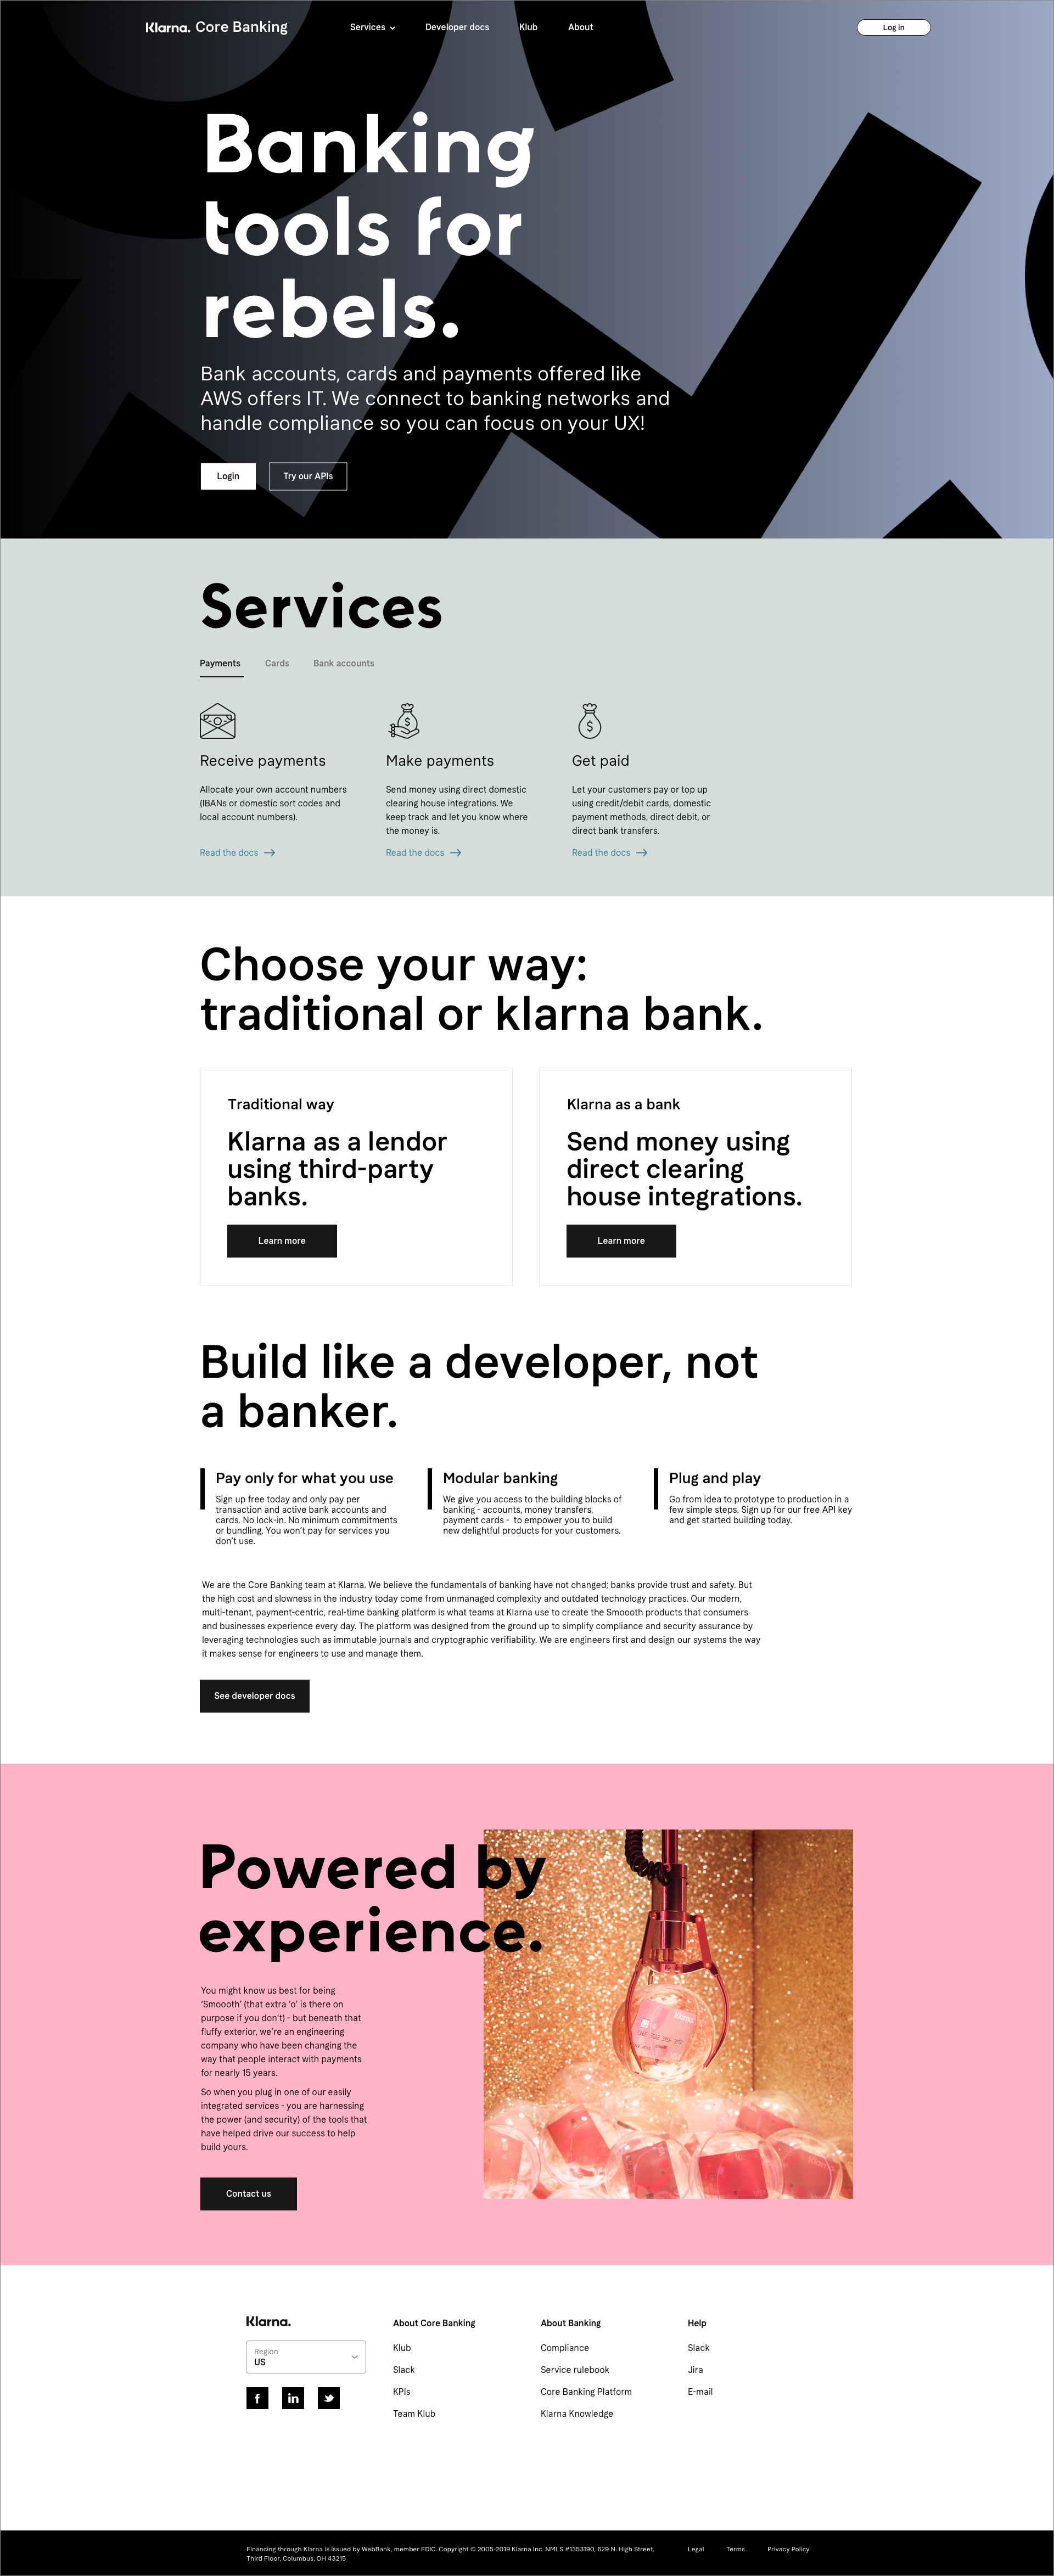 The internal landing page, slightly different to the external one.